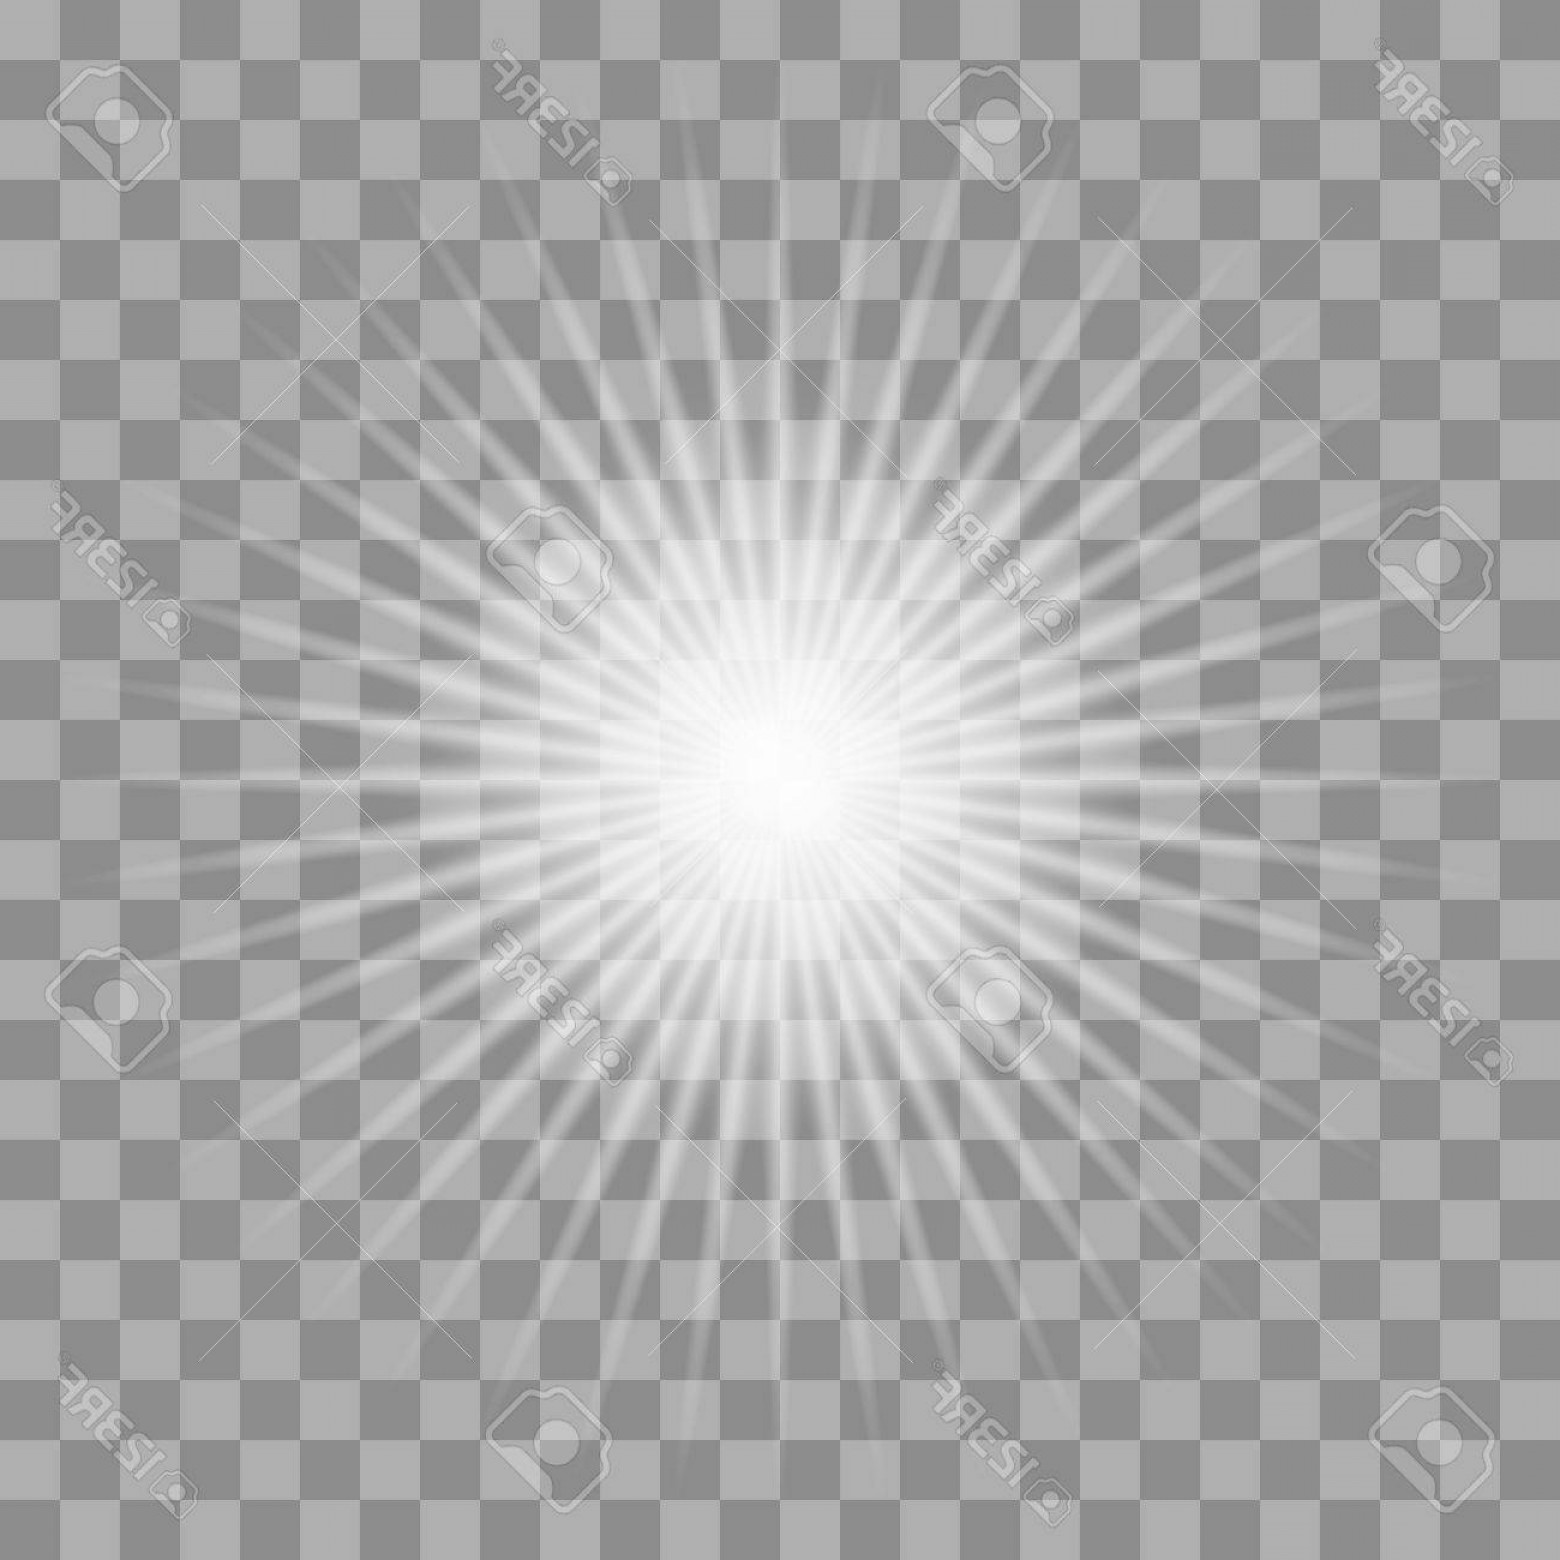 Sparkle Burst Vector: Photostock Vector White Glowing Light Burst Explosion With Transparent Vector Illustration For Cool Effect Decoration